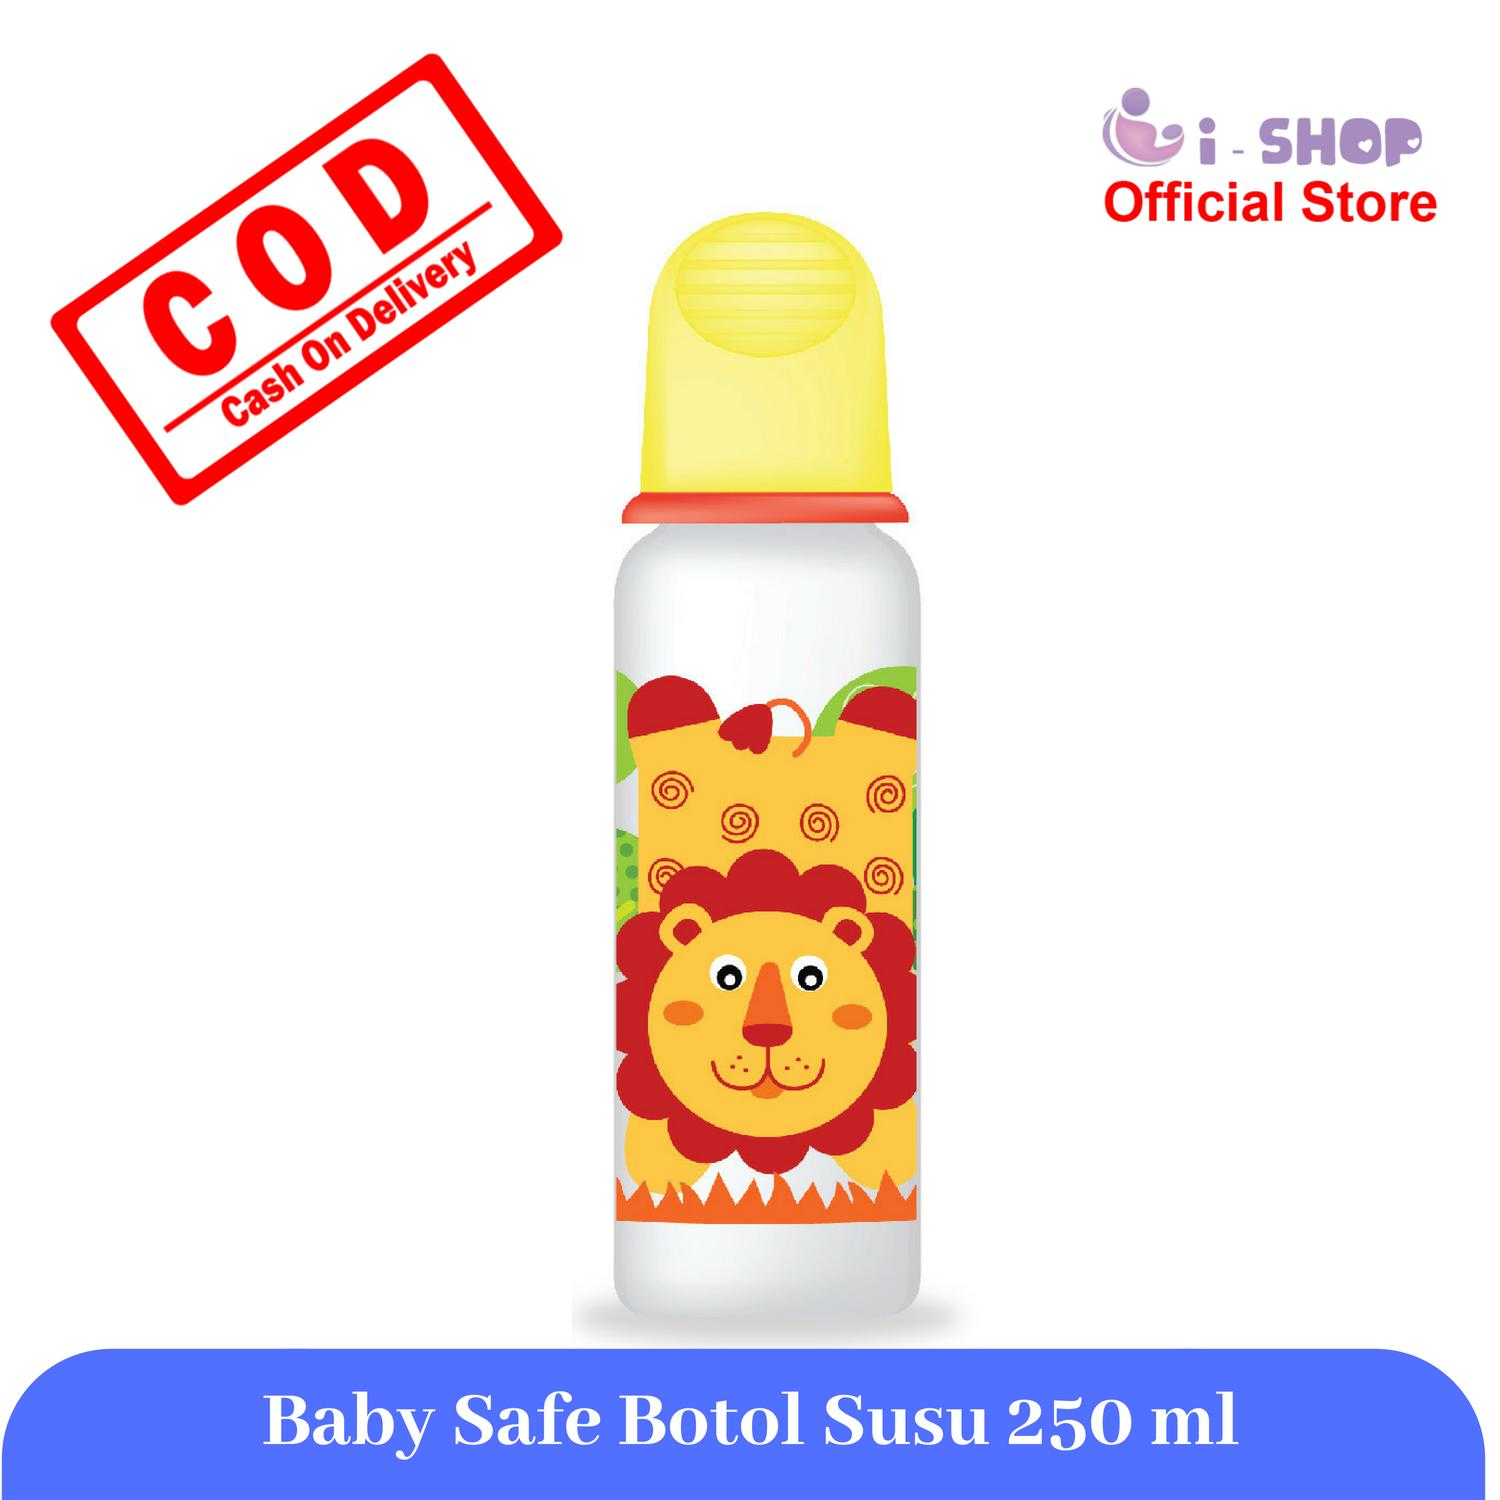 Harga Terbaru Botol Susu Ukuran 250ml November 2018 Paling Laris Bebe Bayi Eco Pp Color I Shop Baby Safe Feeding Bottle 250 Ml